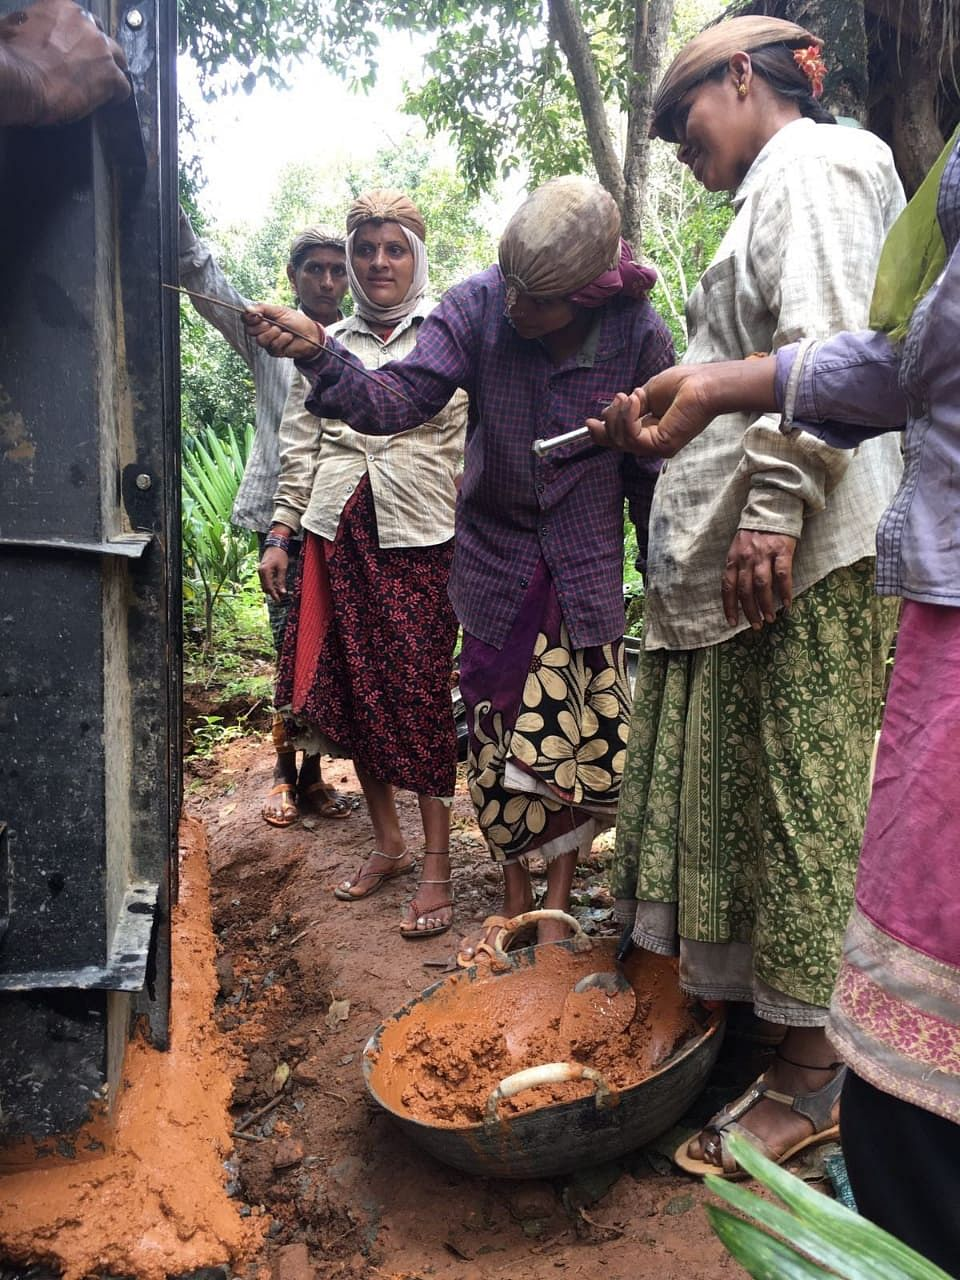 Training women to construct toilets. (Source: AMMACHI Labs)